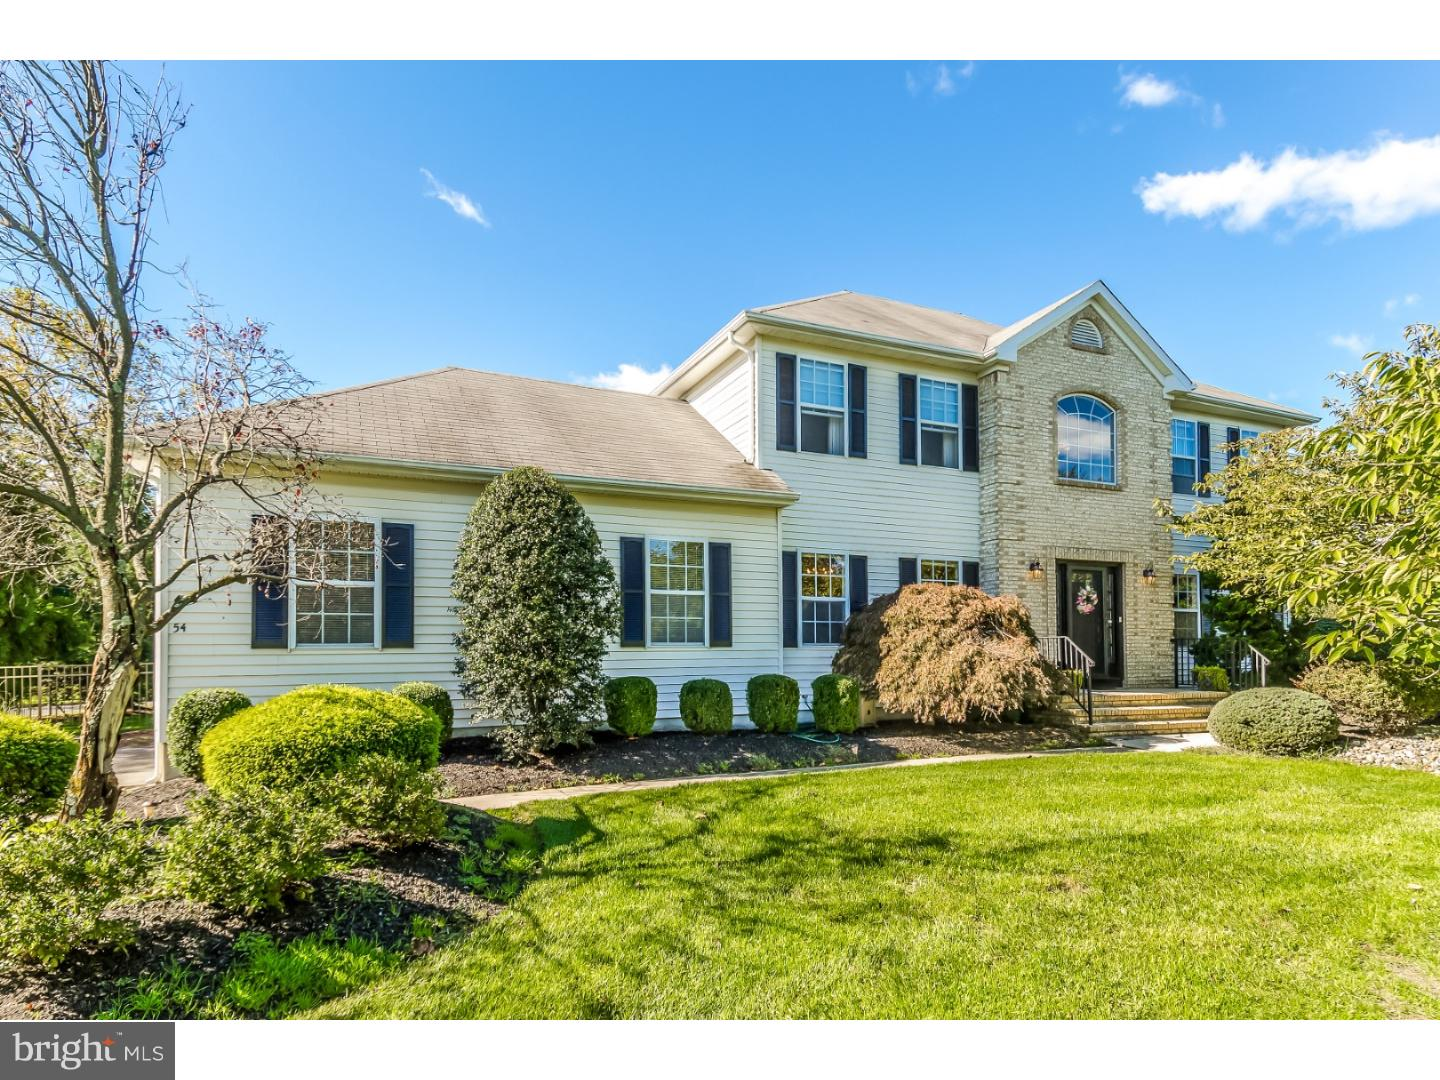 Single Family Home for Sale at 54 JARED Drive Robbinsville, New Jersey 08691 United StatesMunicipality: Robbinsville Township